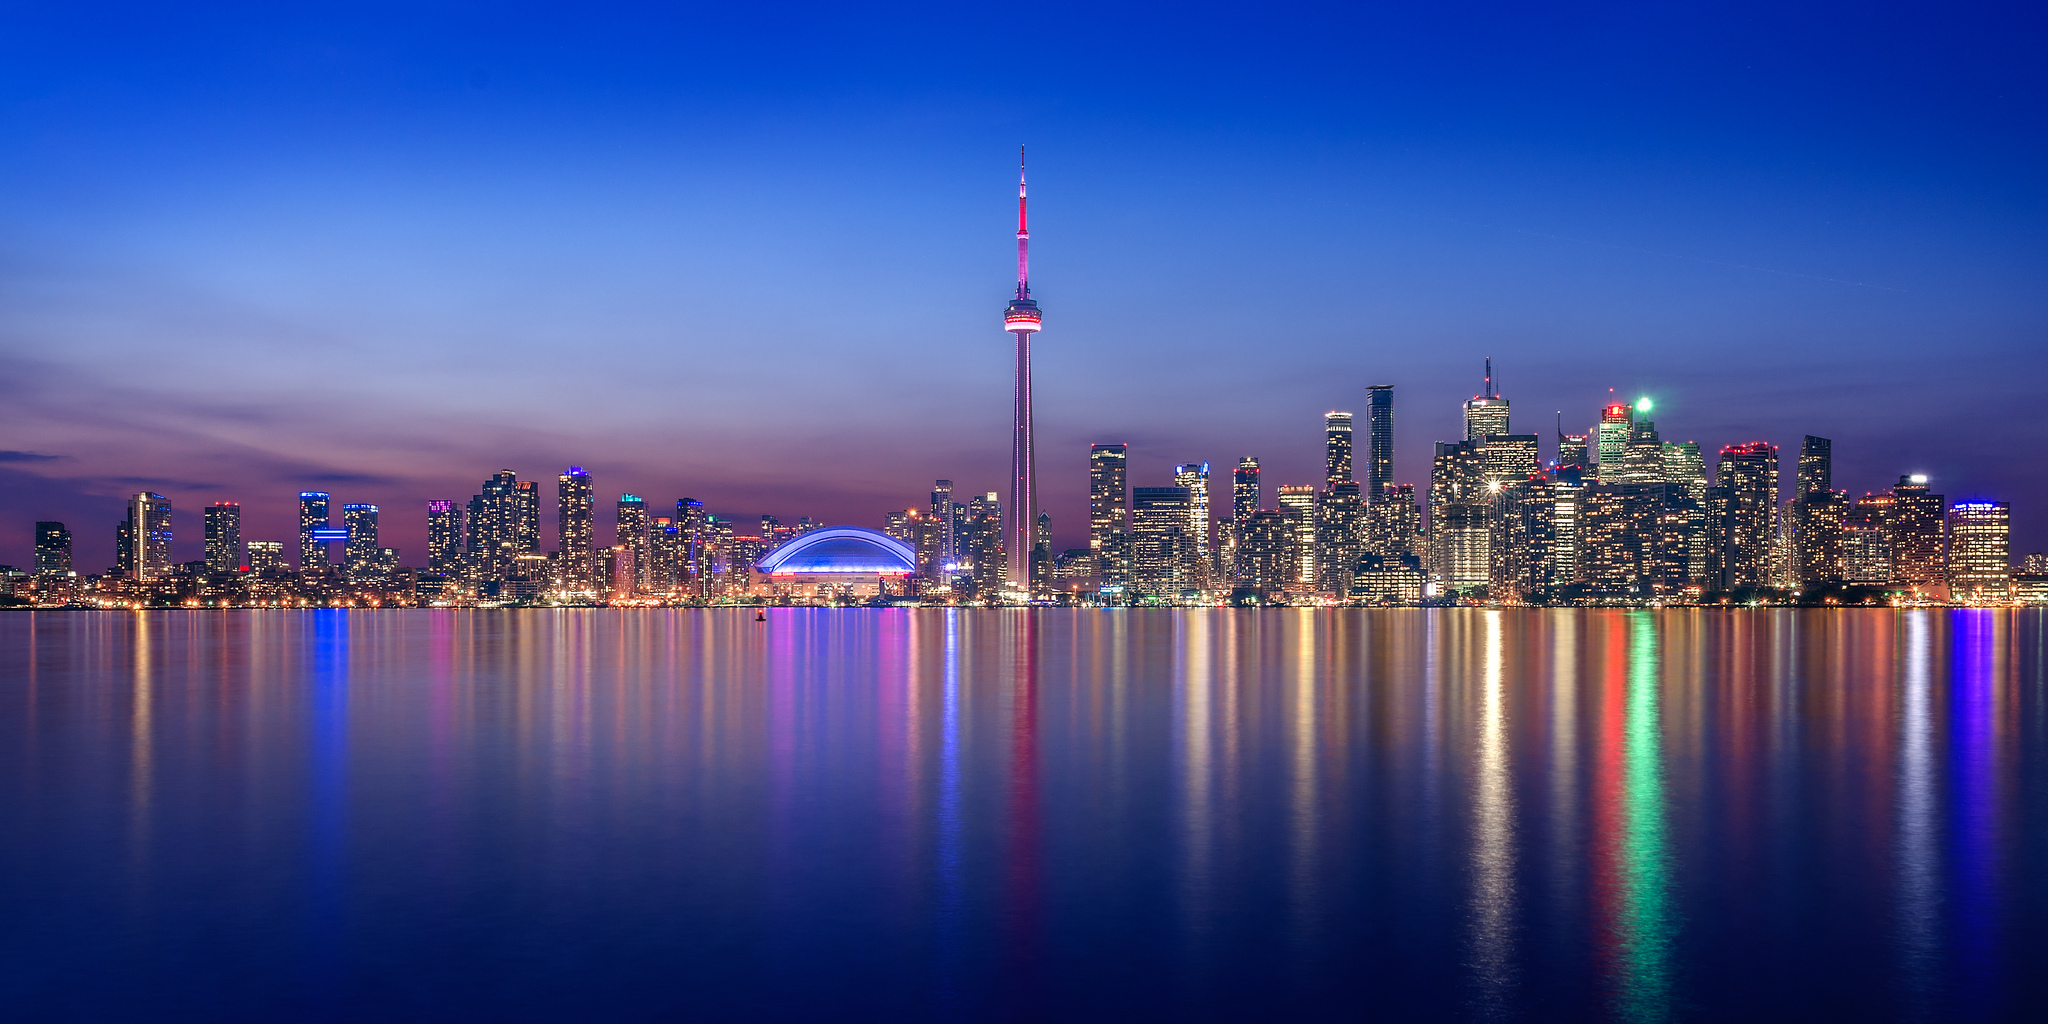 There S A Plan To Turn Toronto Into The Low Carbon City Of